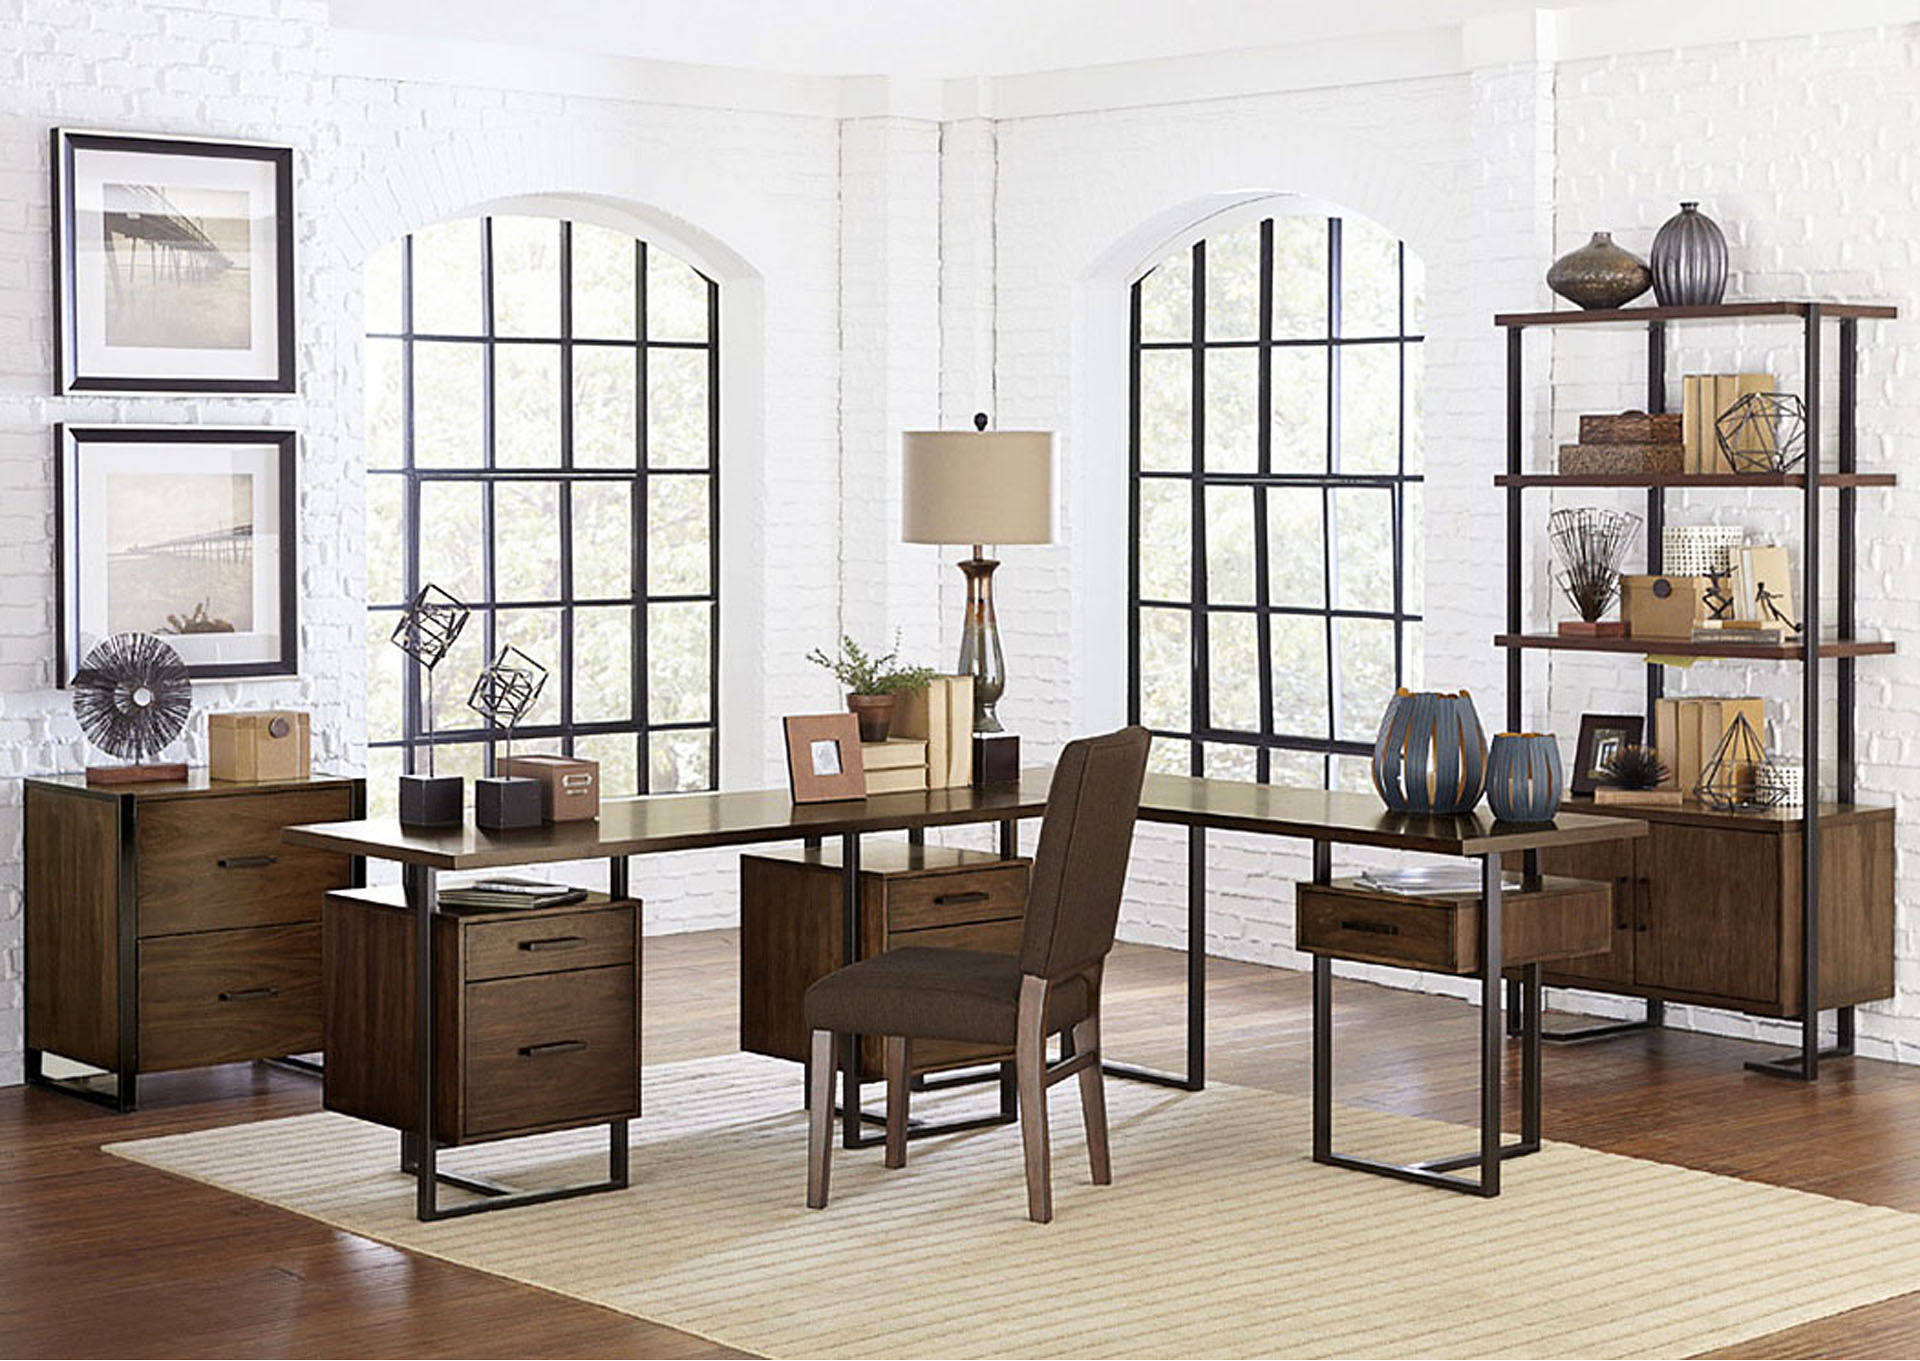 Return Desk w/1 Reversible Cabinet,Homelegance